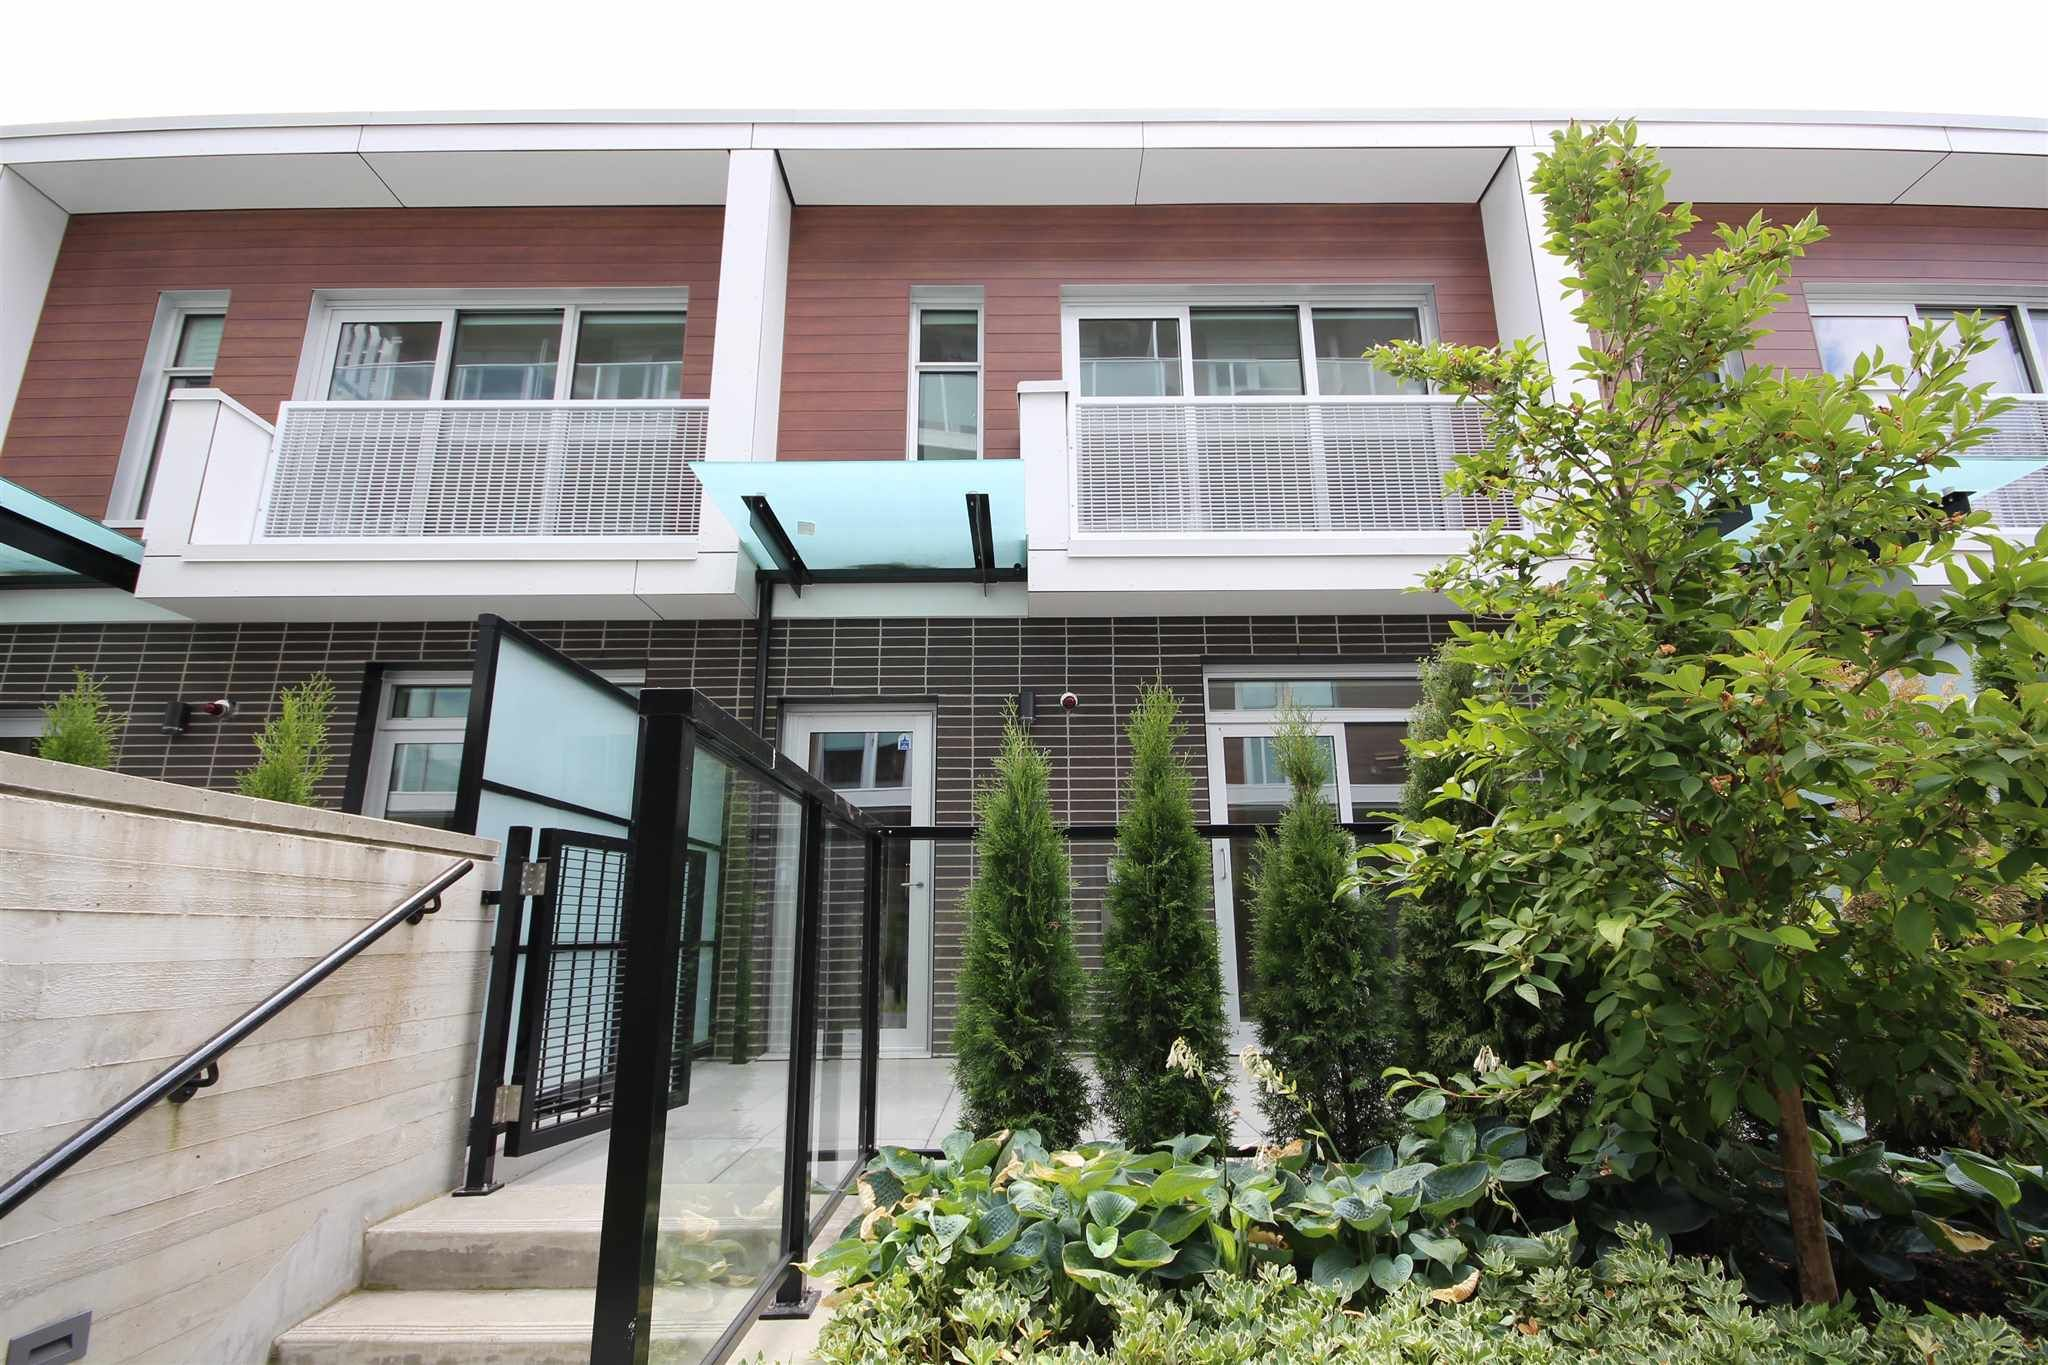 """Main Photo: 534 W KING EDWARD Avenue in Vancouver: Cambie Townhouse for sale in """"CAMBIE + KING EDWARD"""" (Vancouver West)  : MLS®# R2593912"""